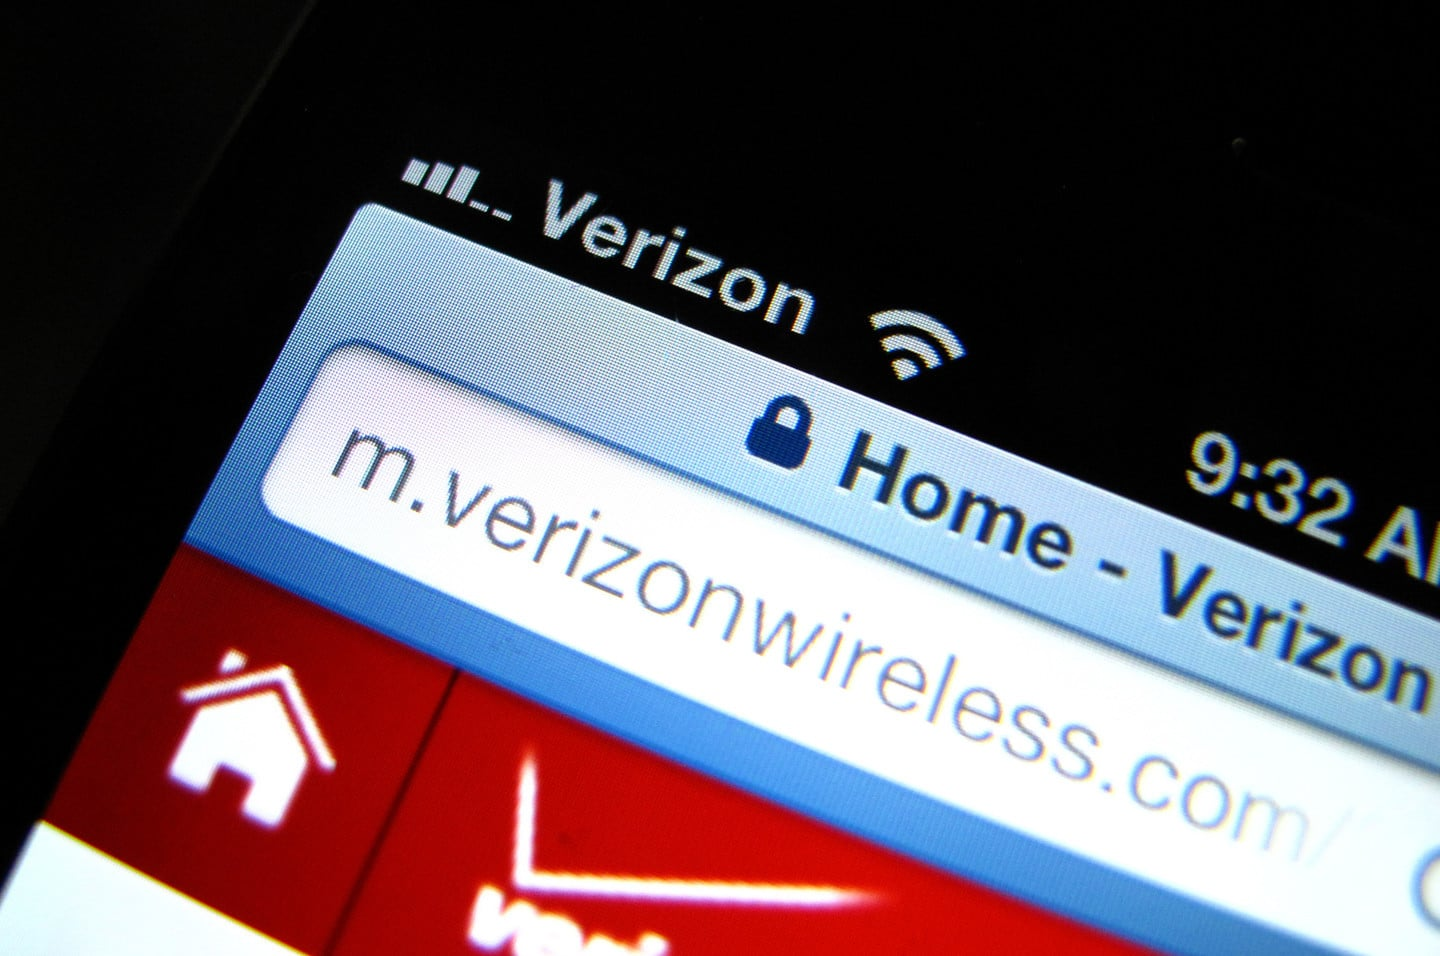 Verizon 'optimizing' video apps on mobile network